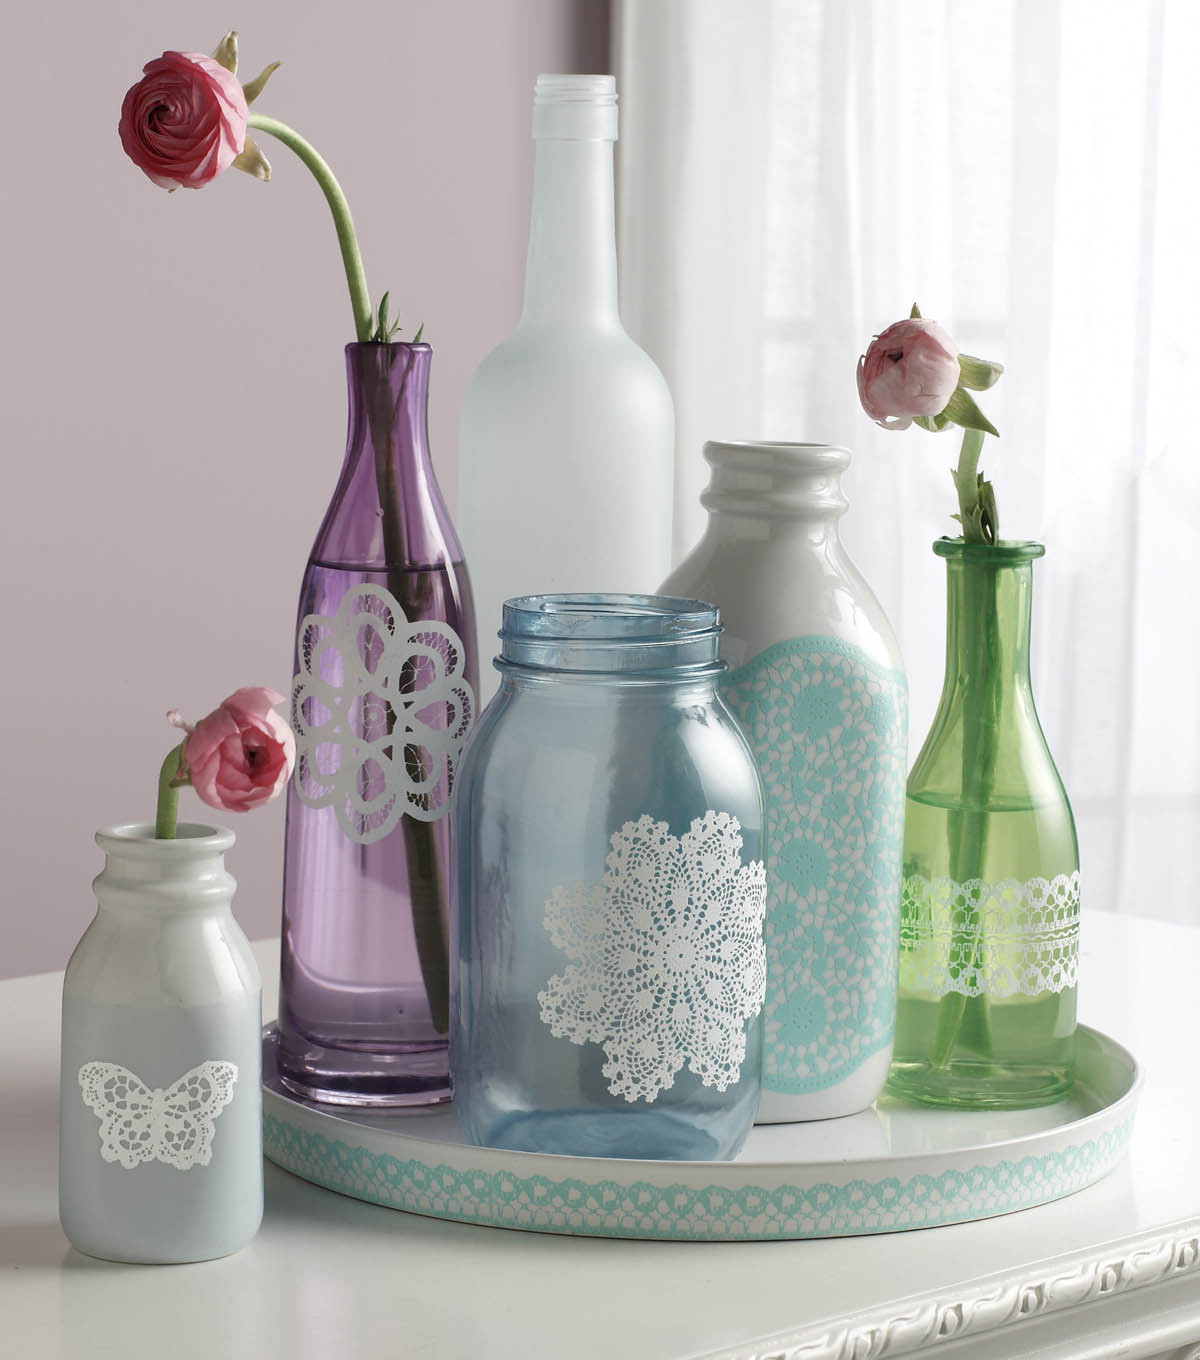 Doily Lace Bottle Set, Martha Stewart